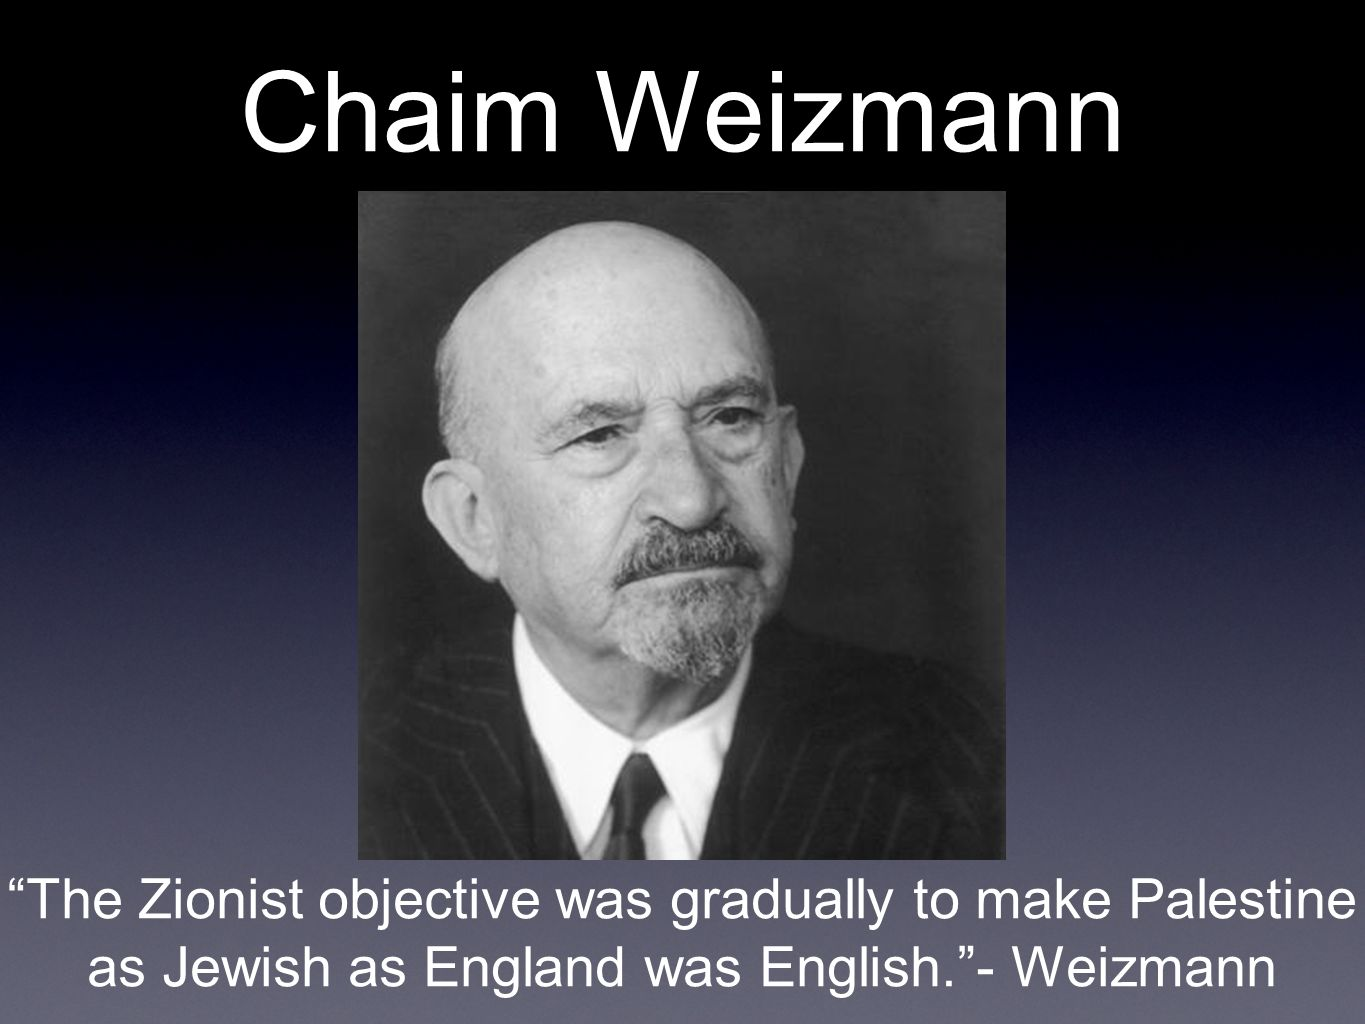 Chaim Weizmann The Zionist objective was gradually to make Palestine as Jewish as England was English.- Weizmann